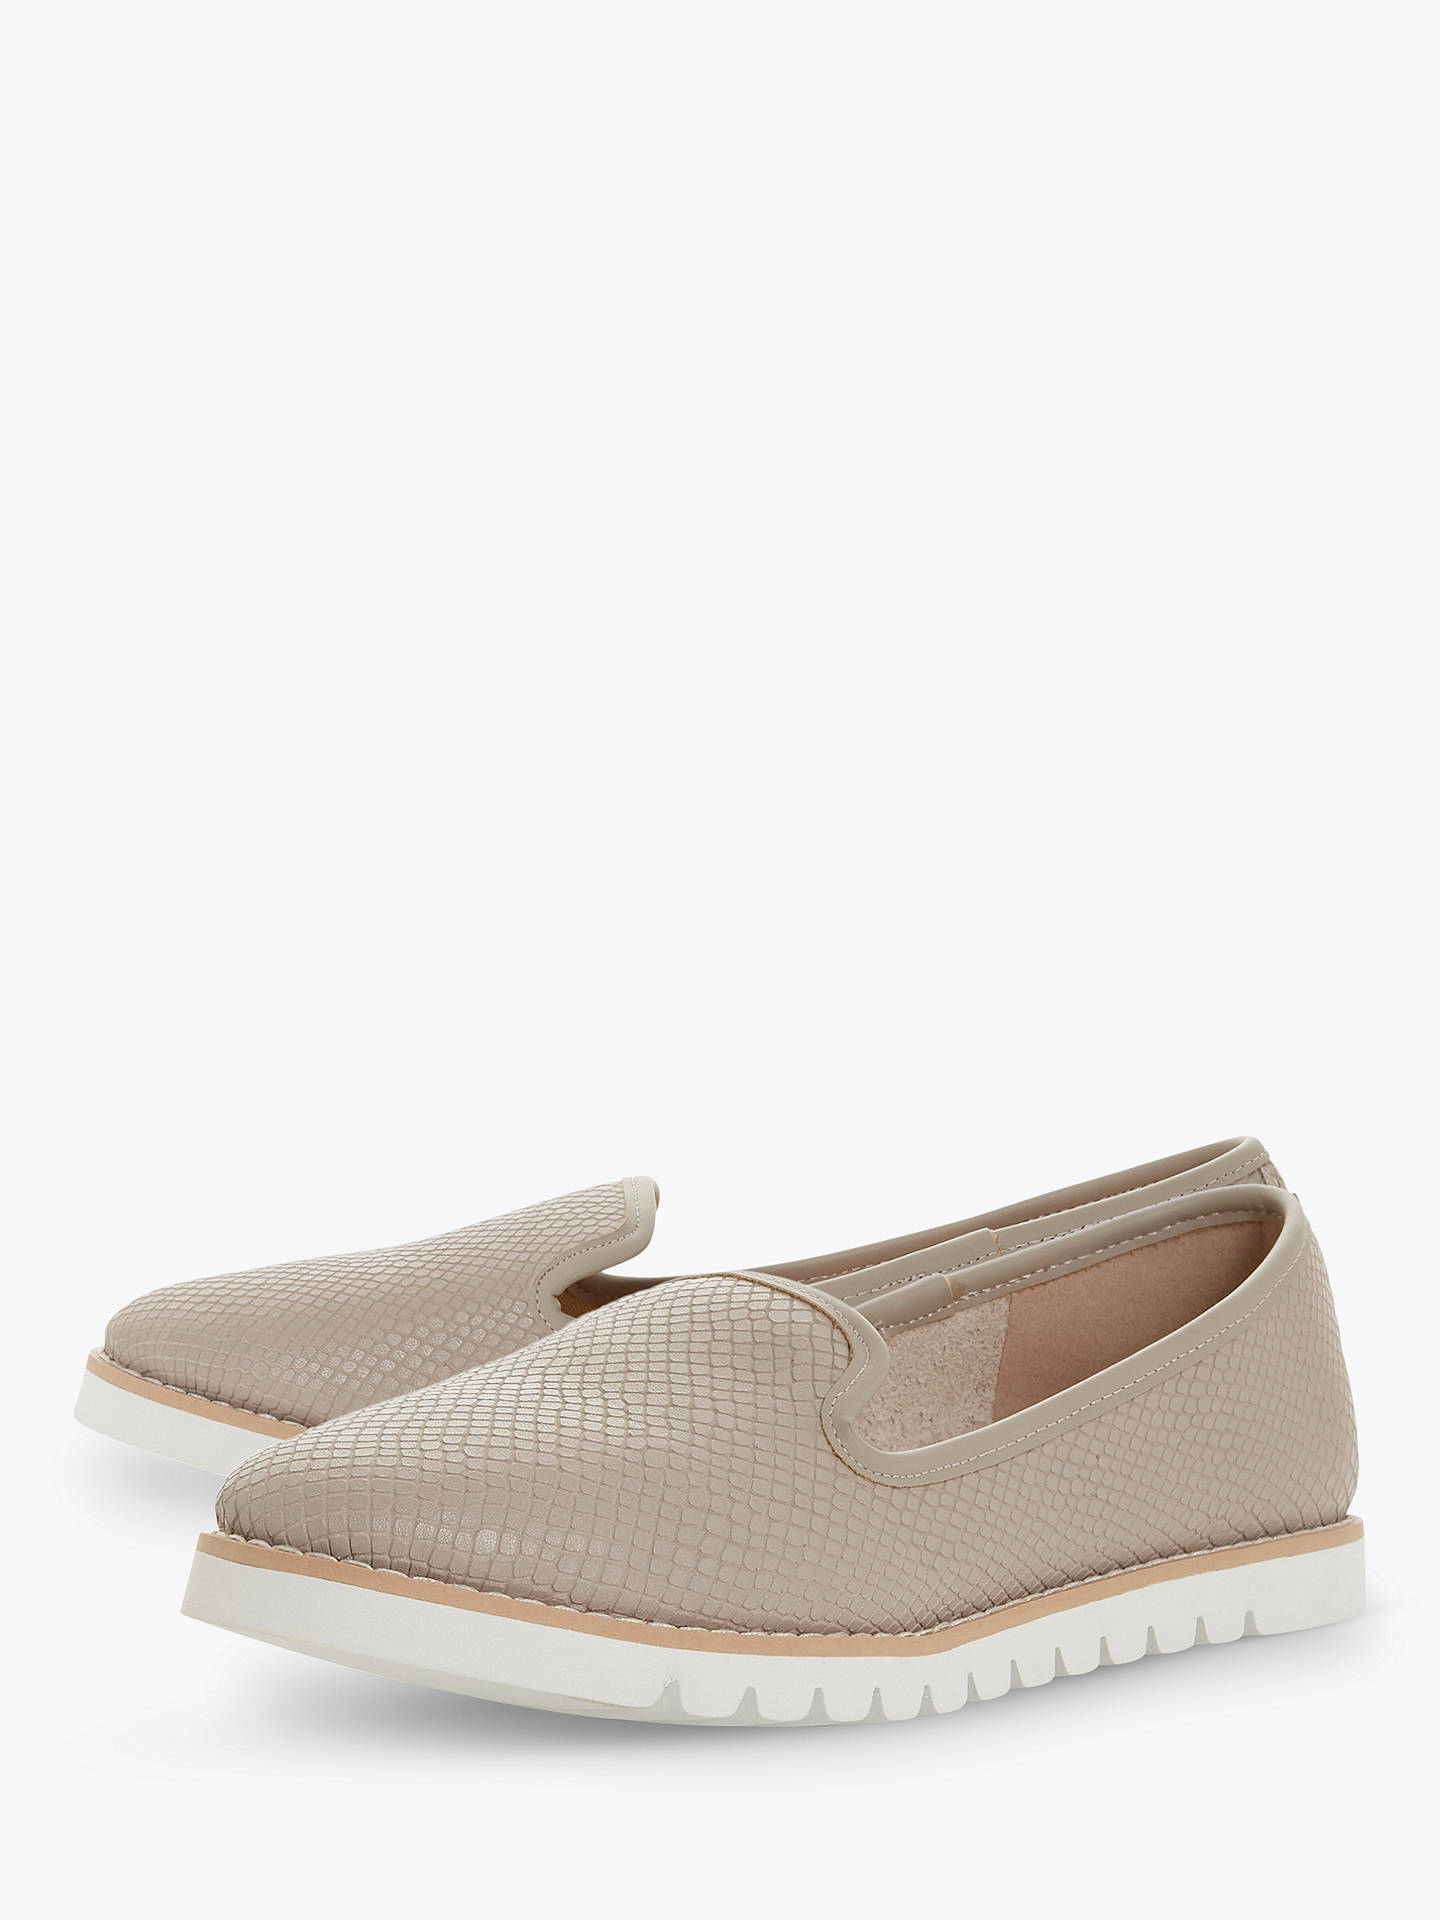 f546db8cb ... Buy Dune Galleon Ridged Loafers, Grey Leather, 3 Online at  johnlewis.com ...